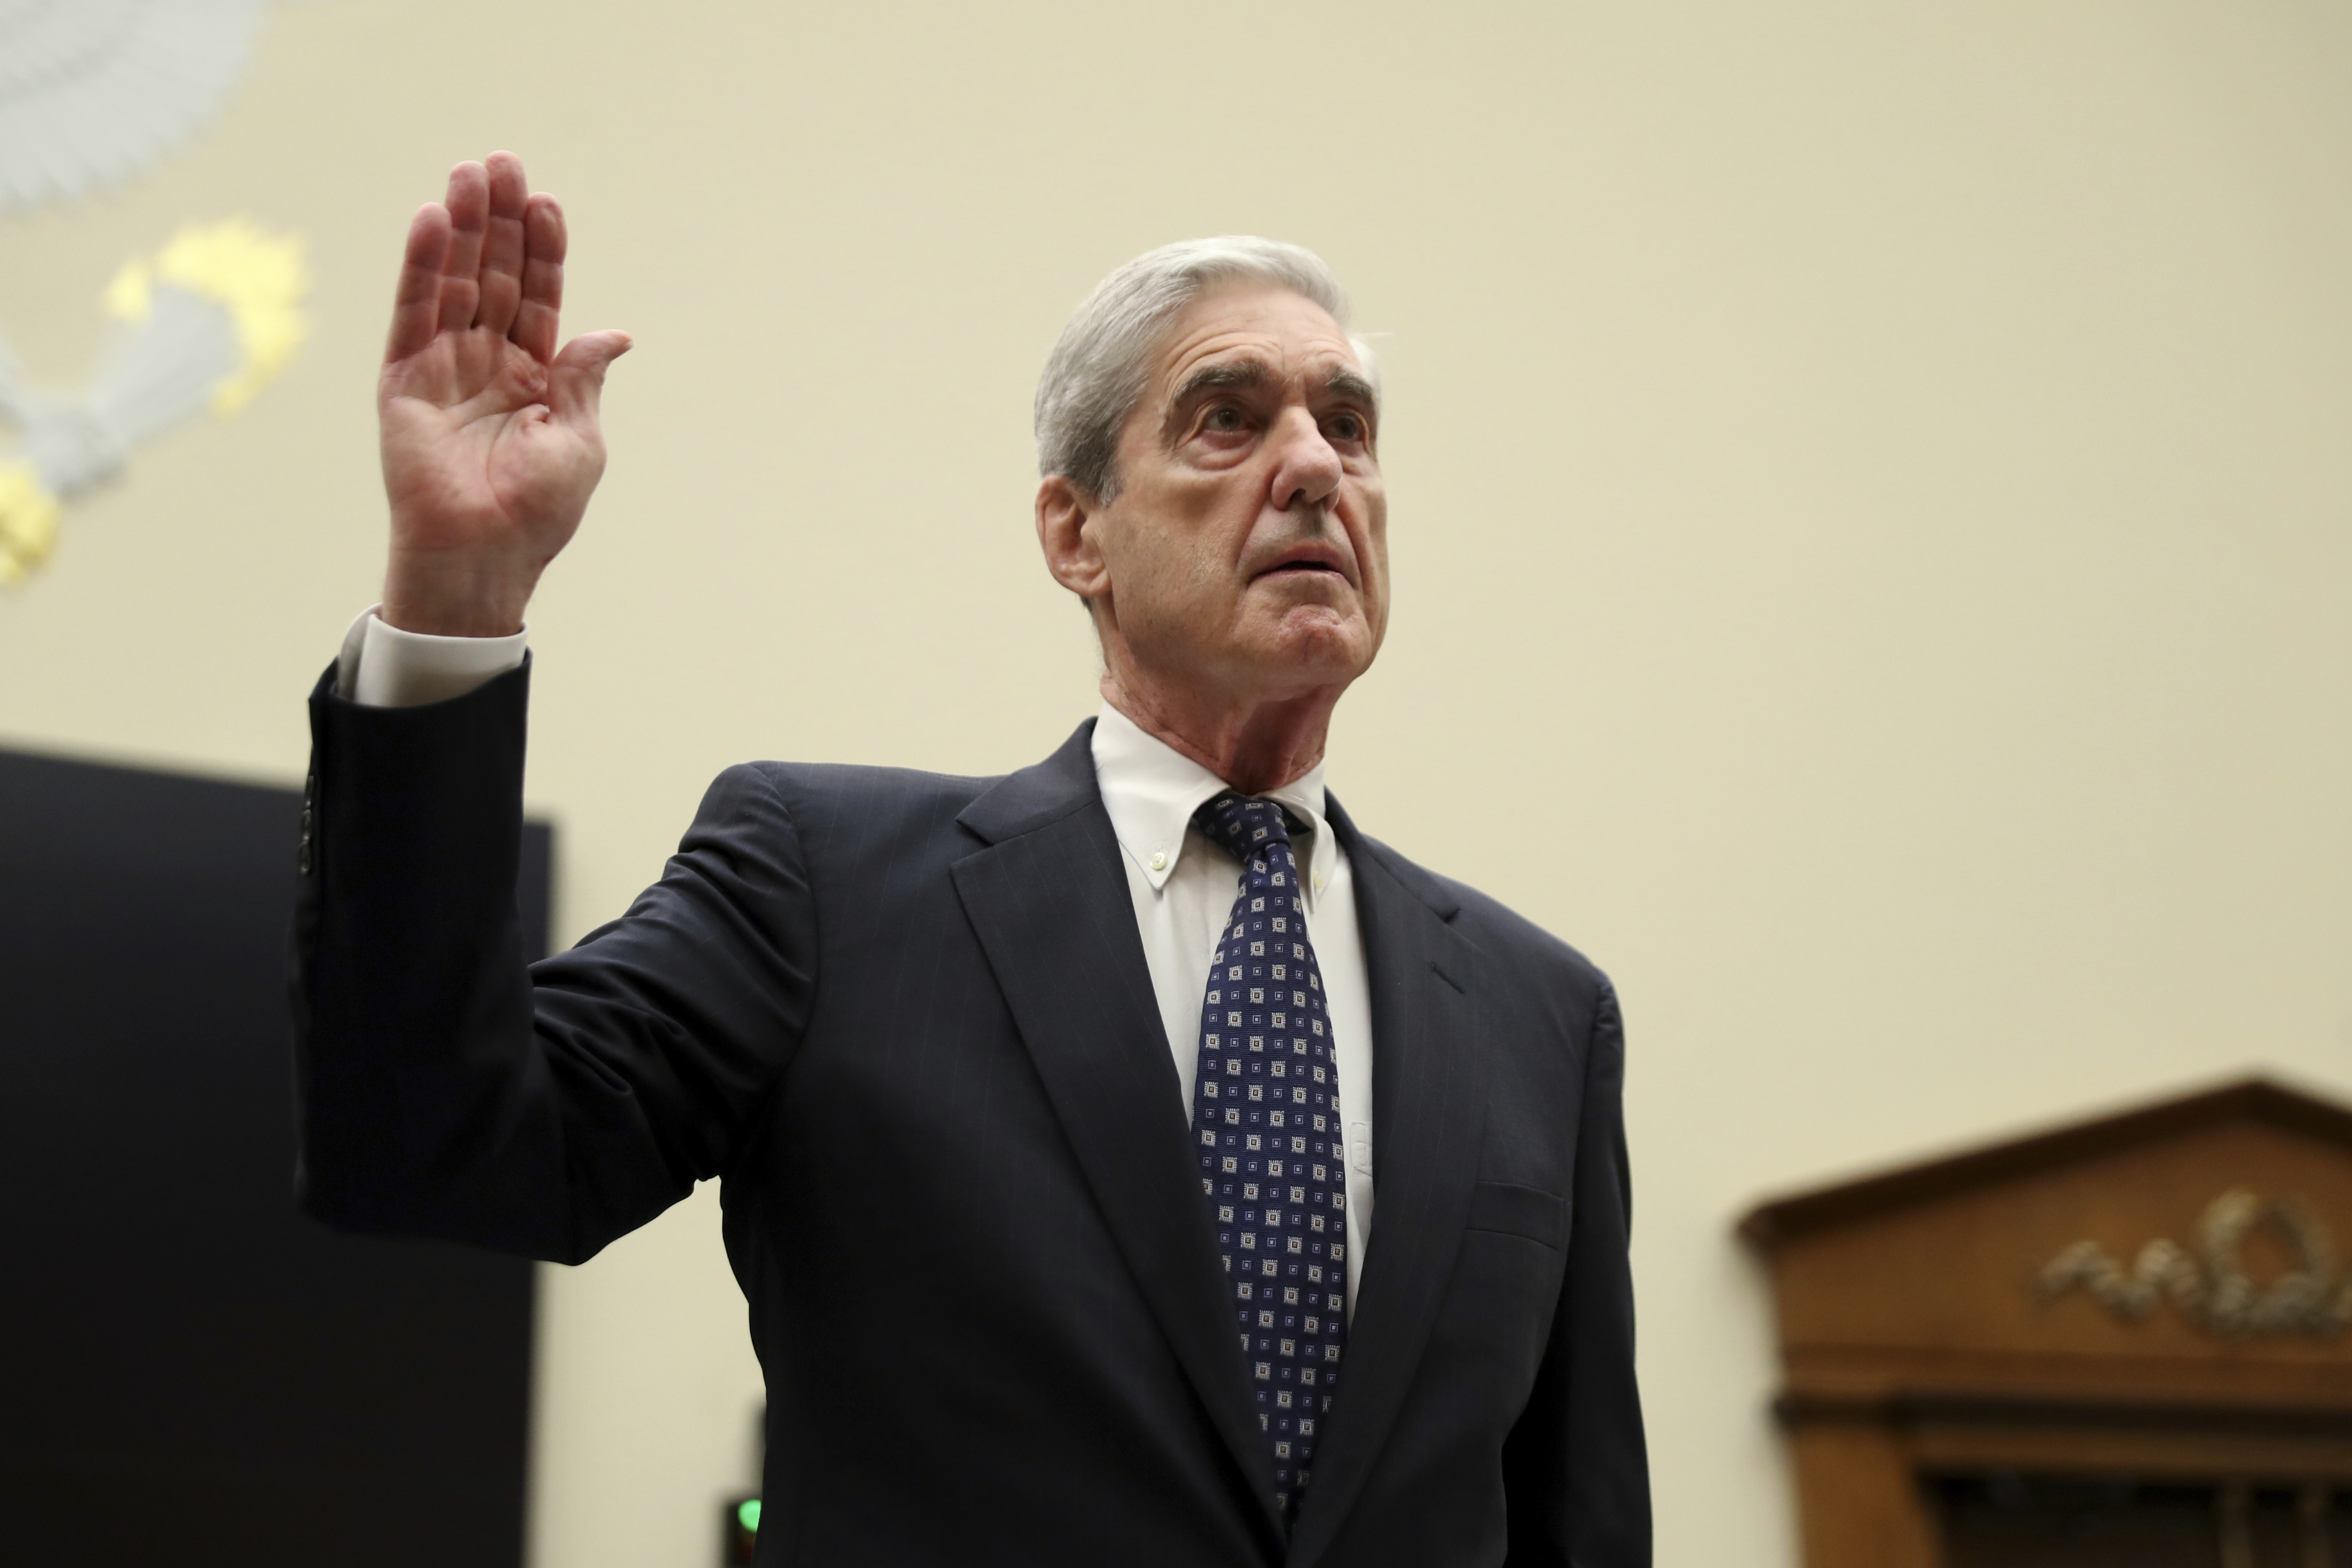 Pa. representatives stick to party line in Mueller hearing